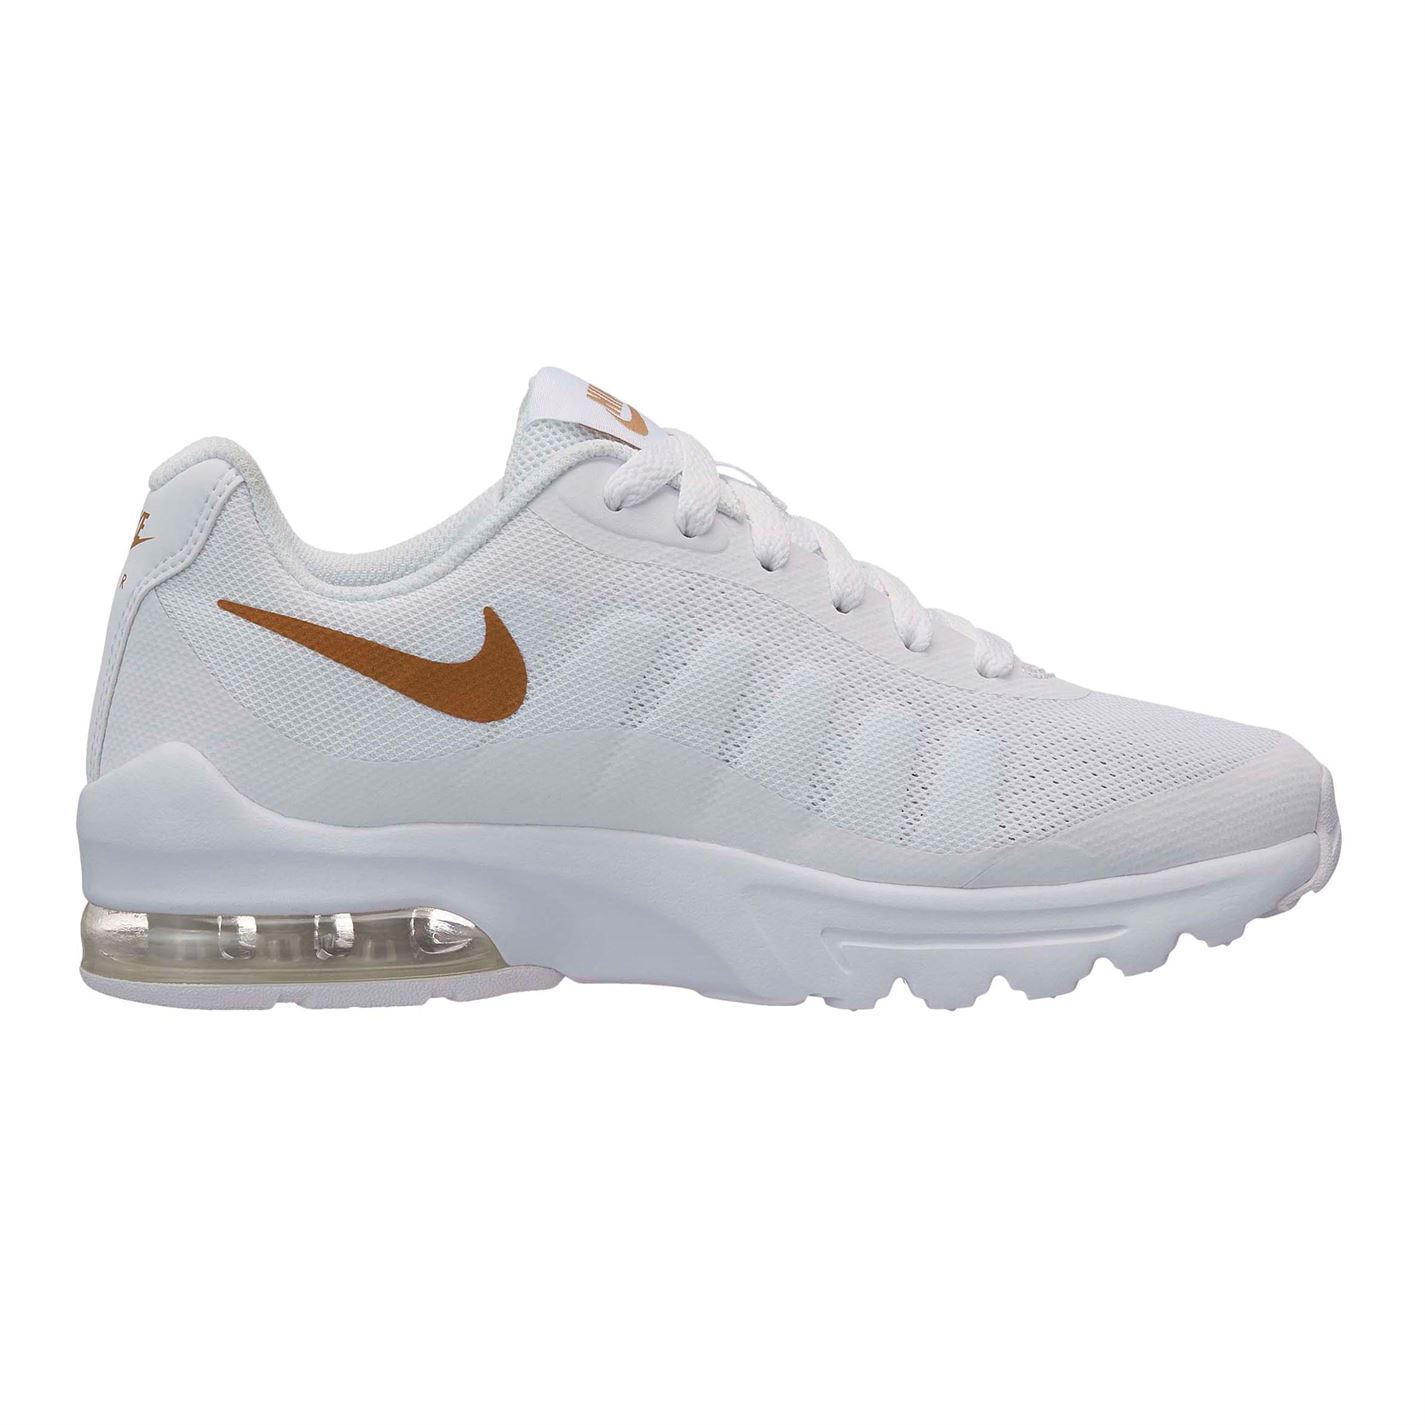 outlet store cdb8d 87acd Nike Air Max Invigor Trainers Junior Boys Shoes Footwear | eBay